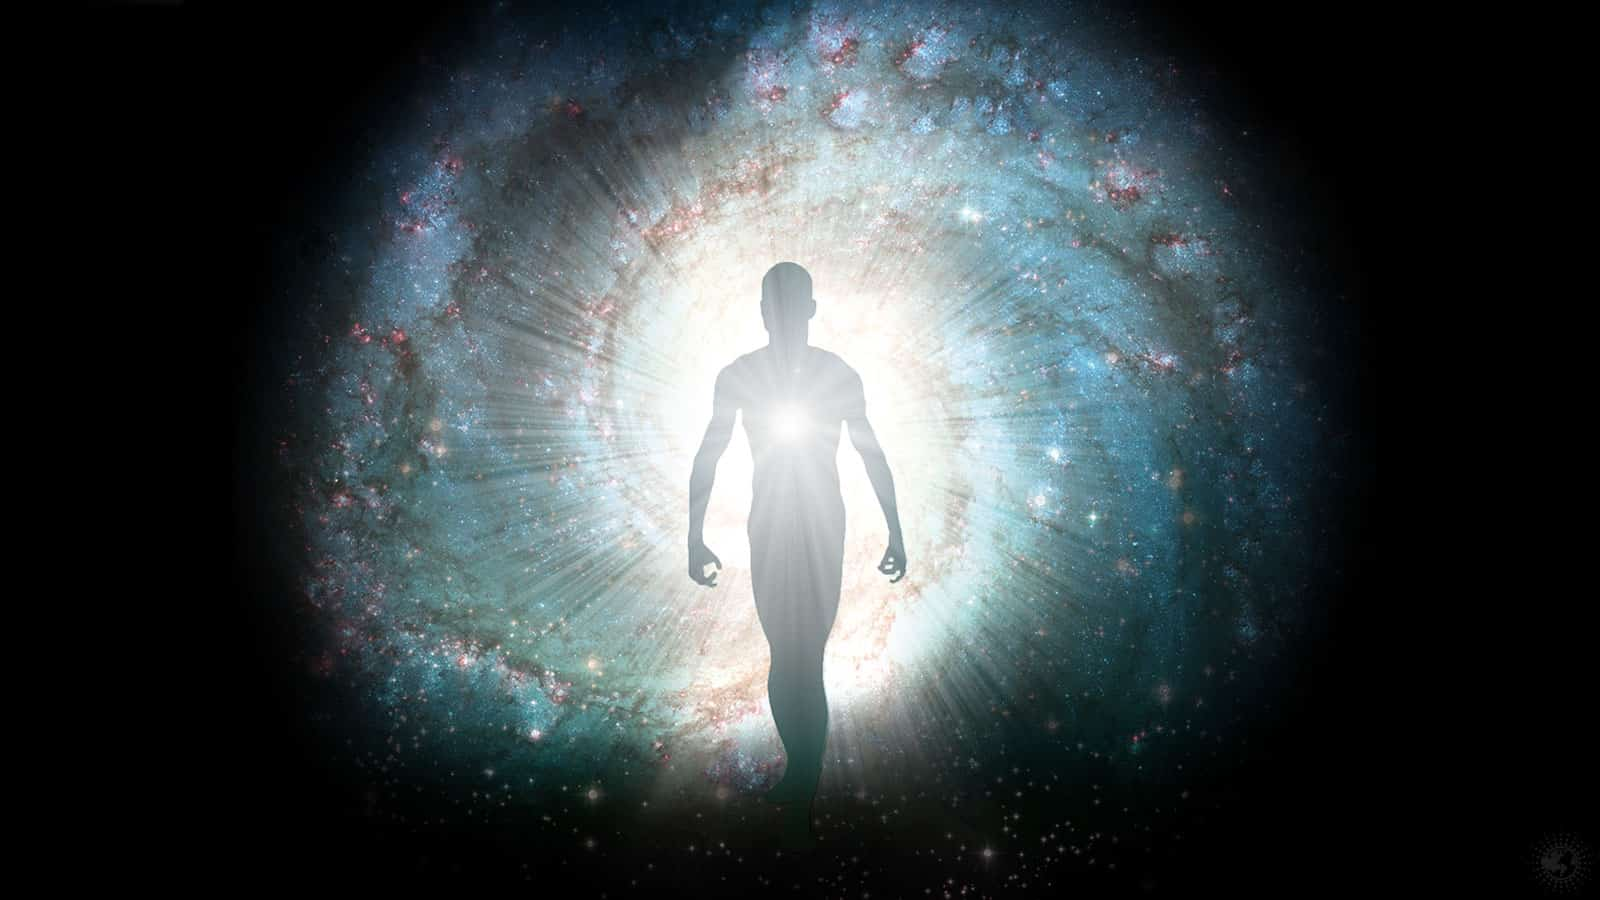 10 Signs of Reincarnation That Reveal You've Been Here Before